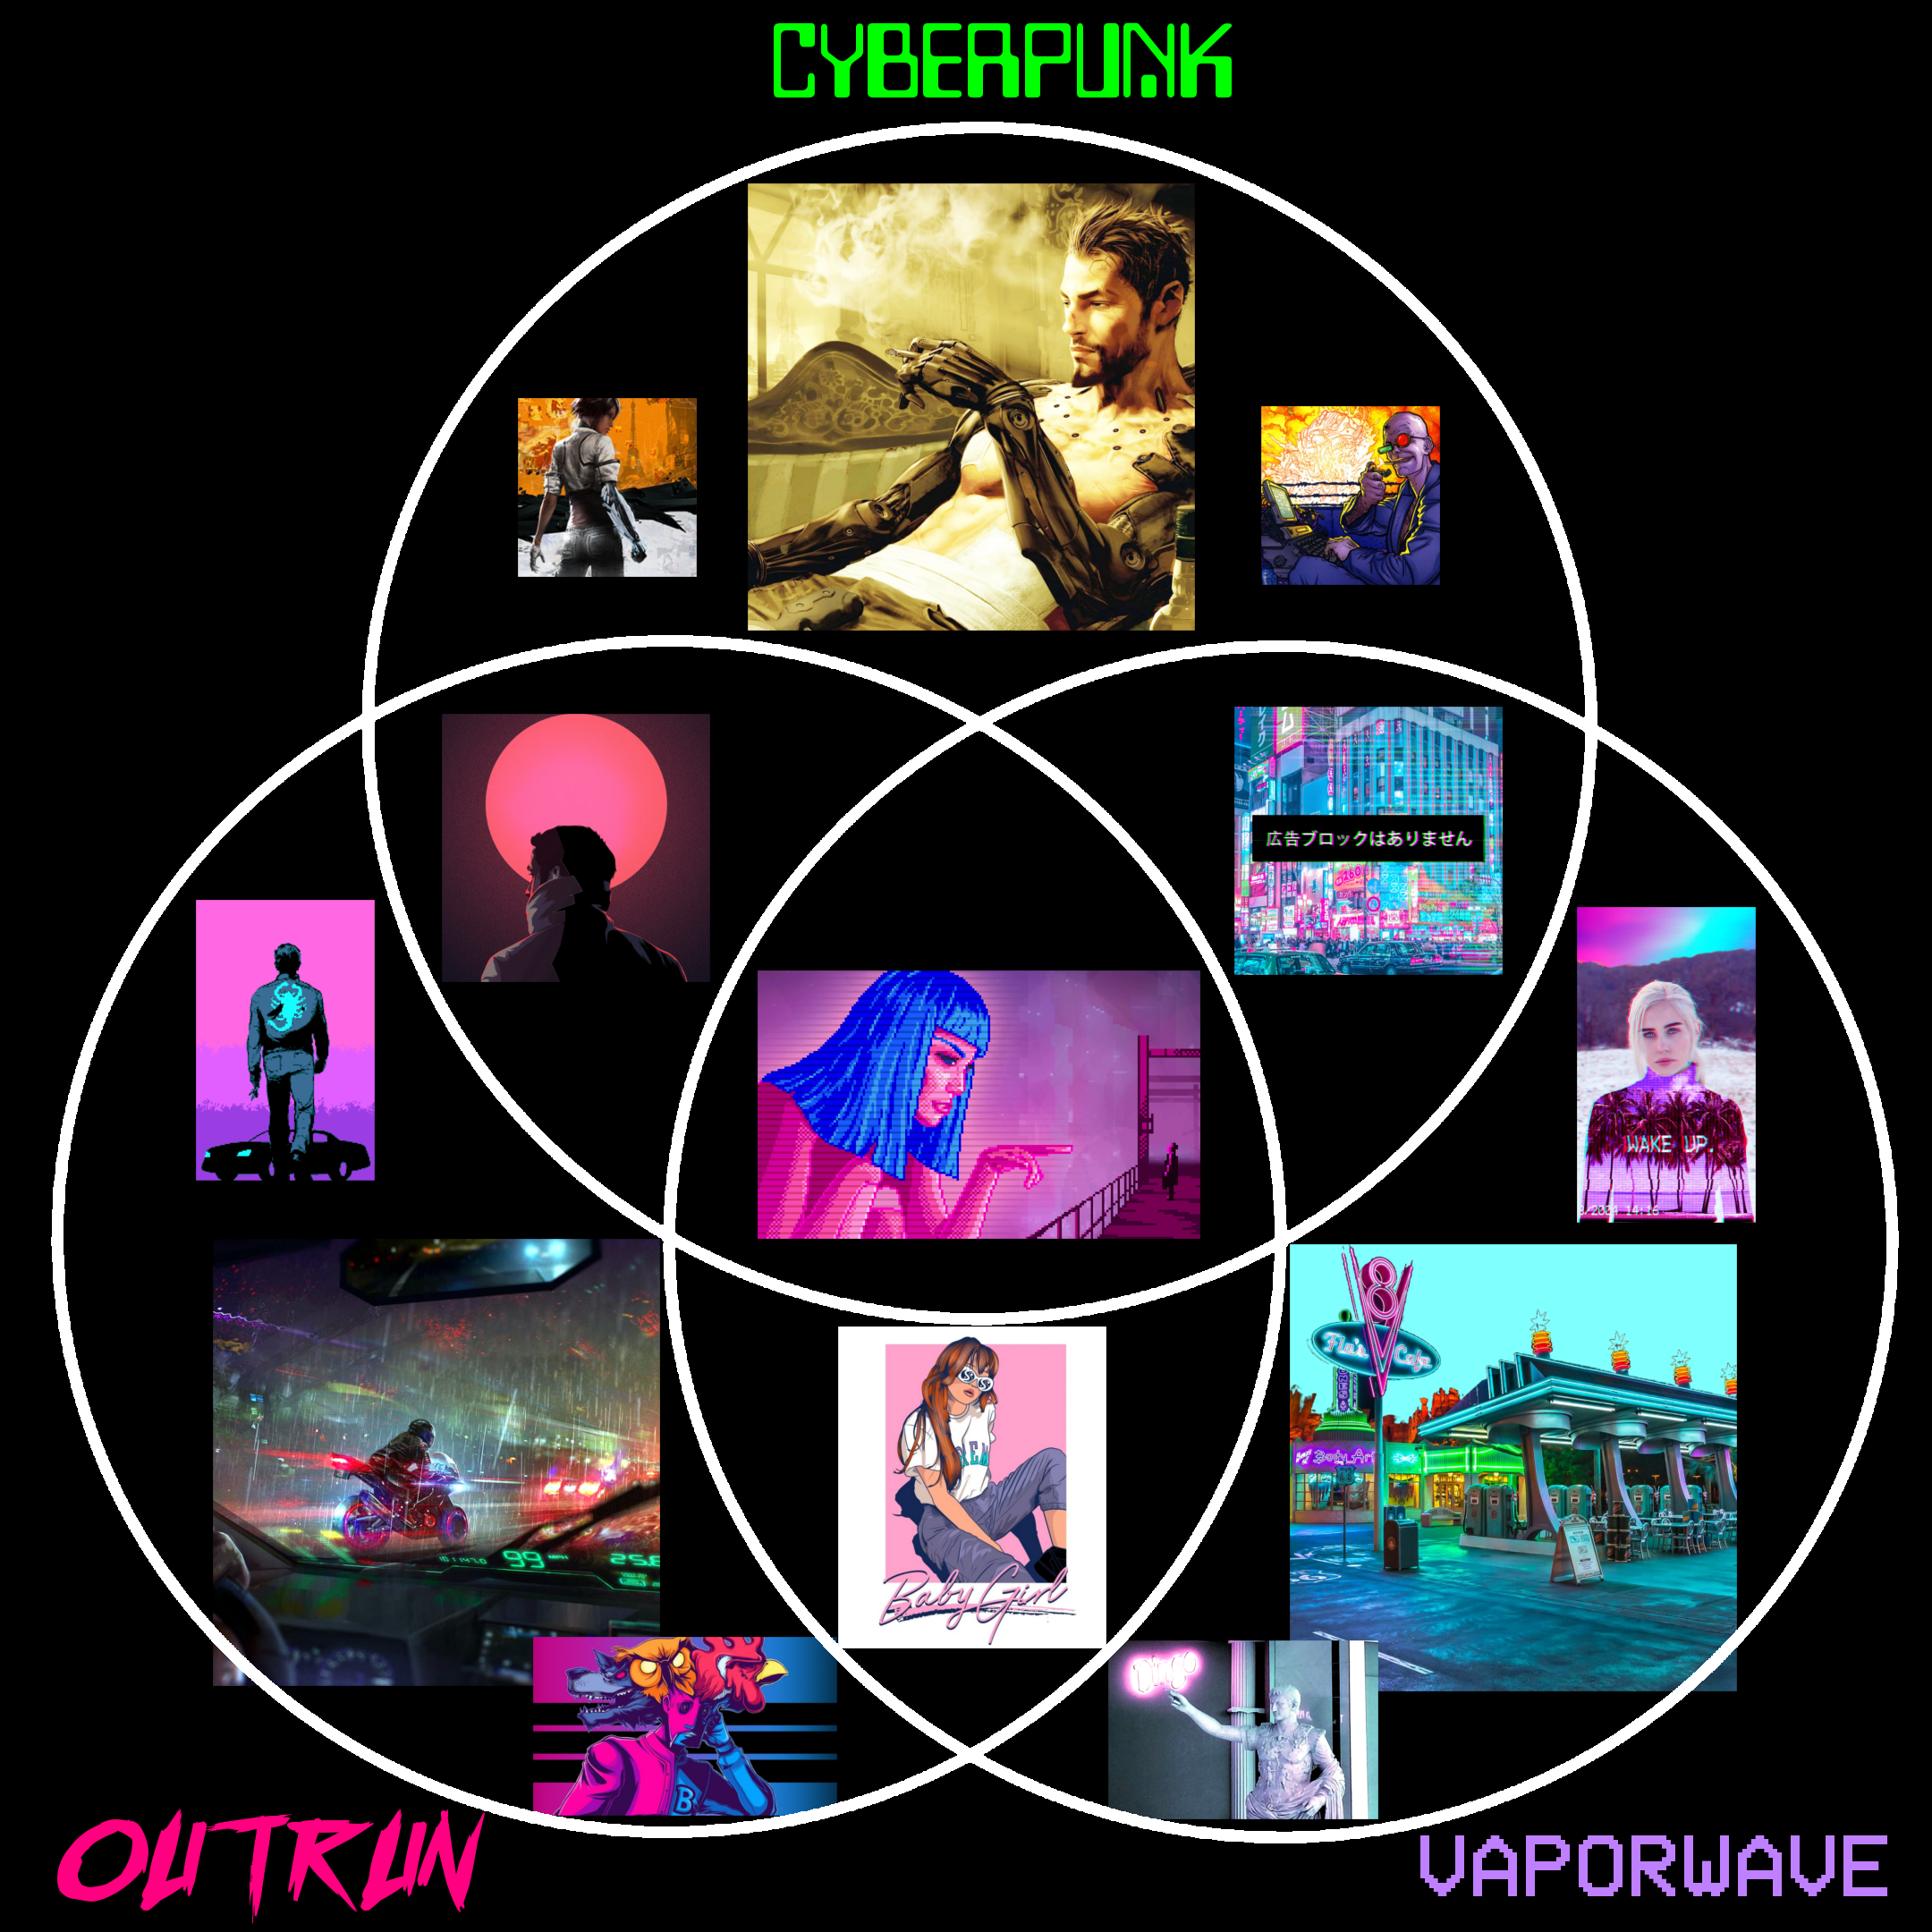 medium resolution of a venn diagram comparing cyberpunk outrun and vaporwave styles and themes